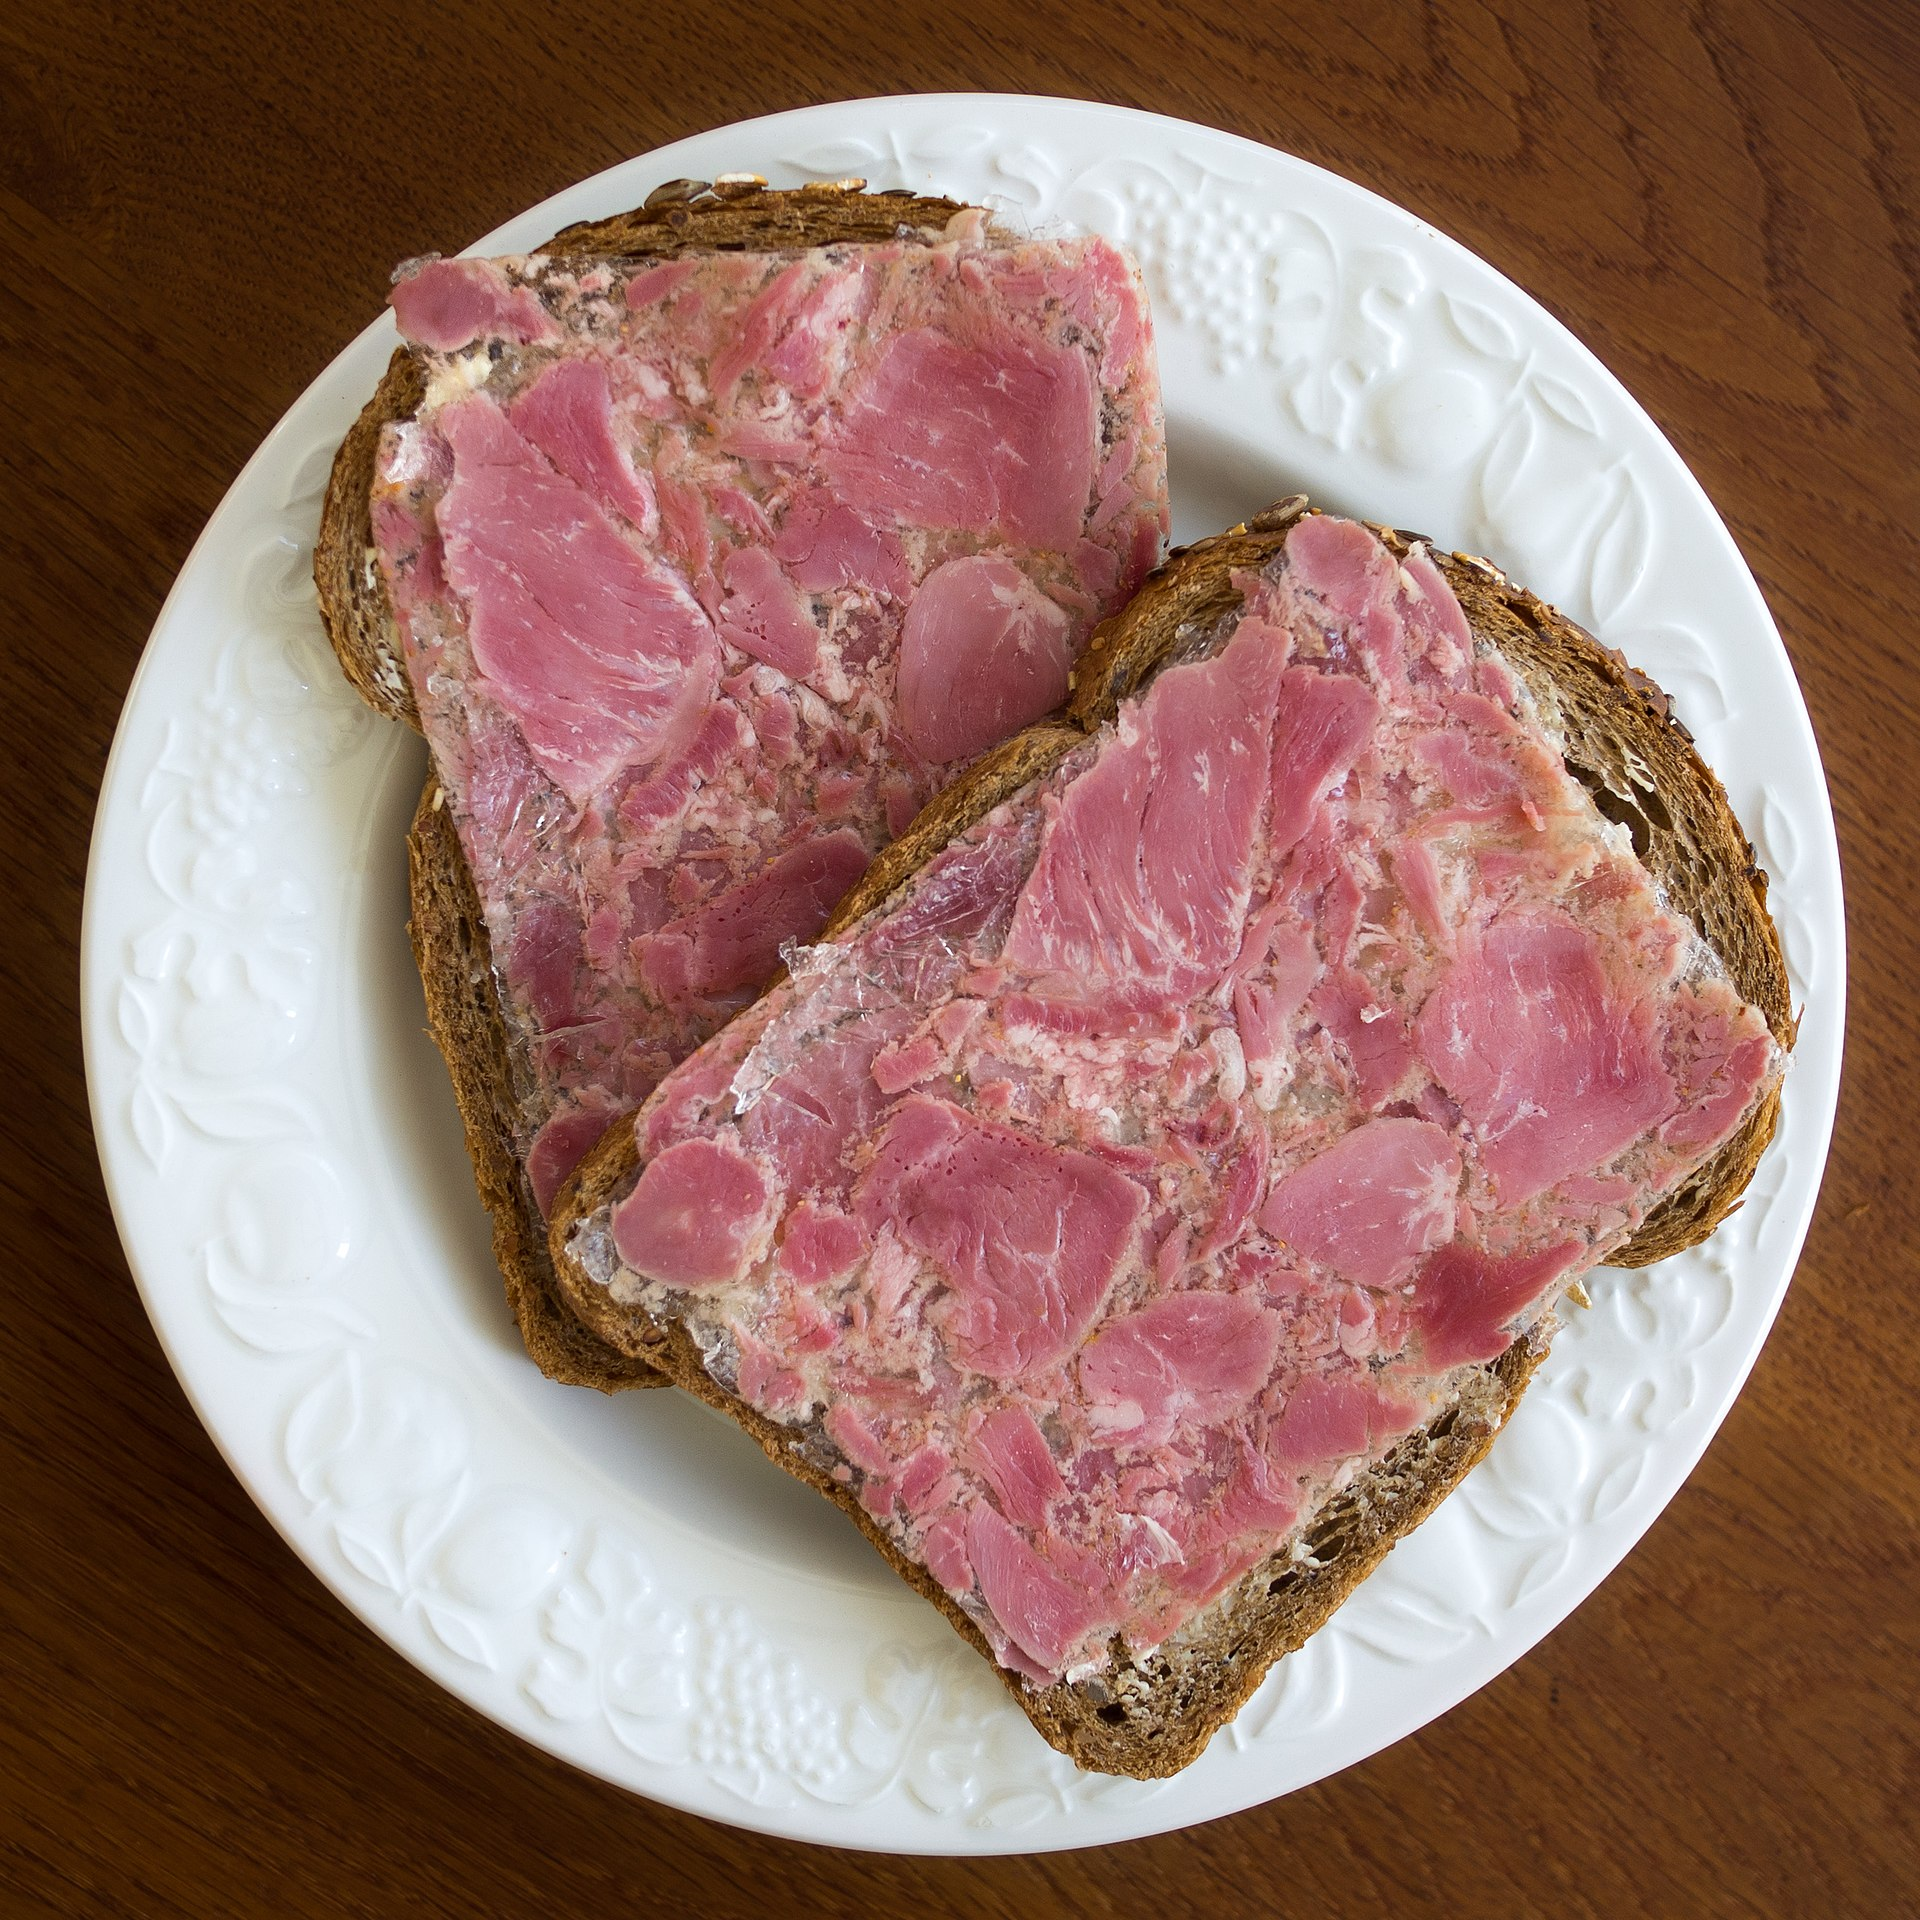 Old Fashioned Loaf Luncheon Meat Uses